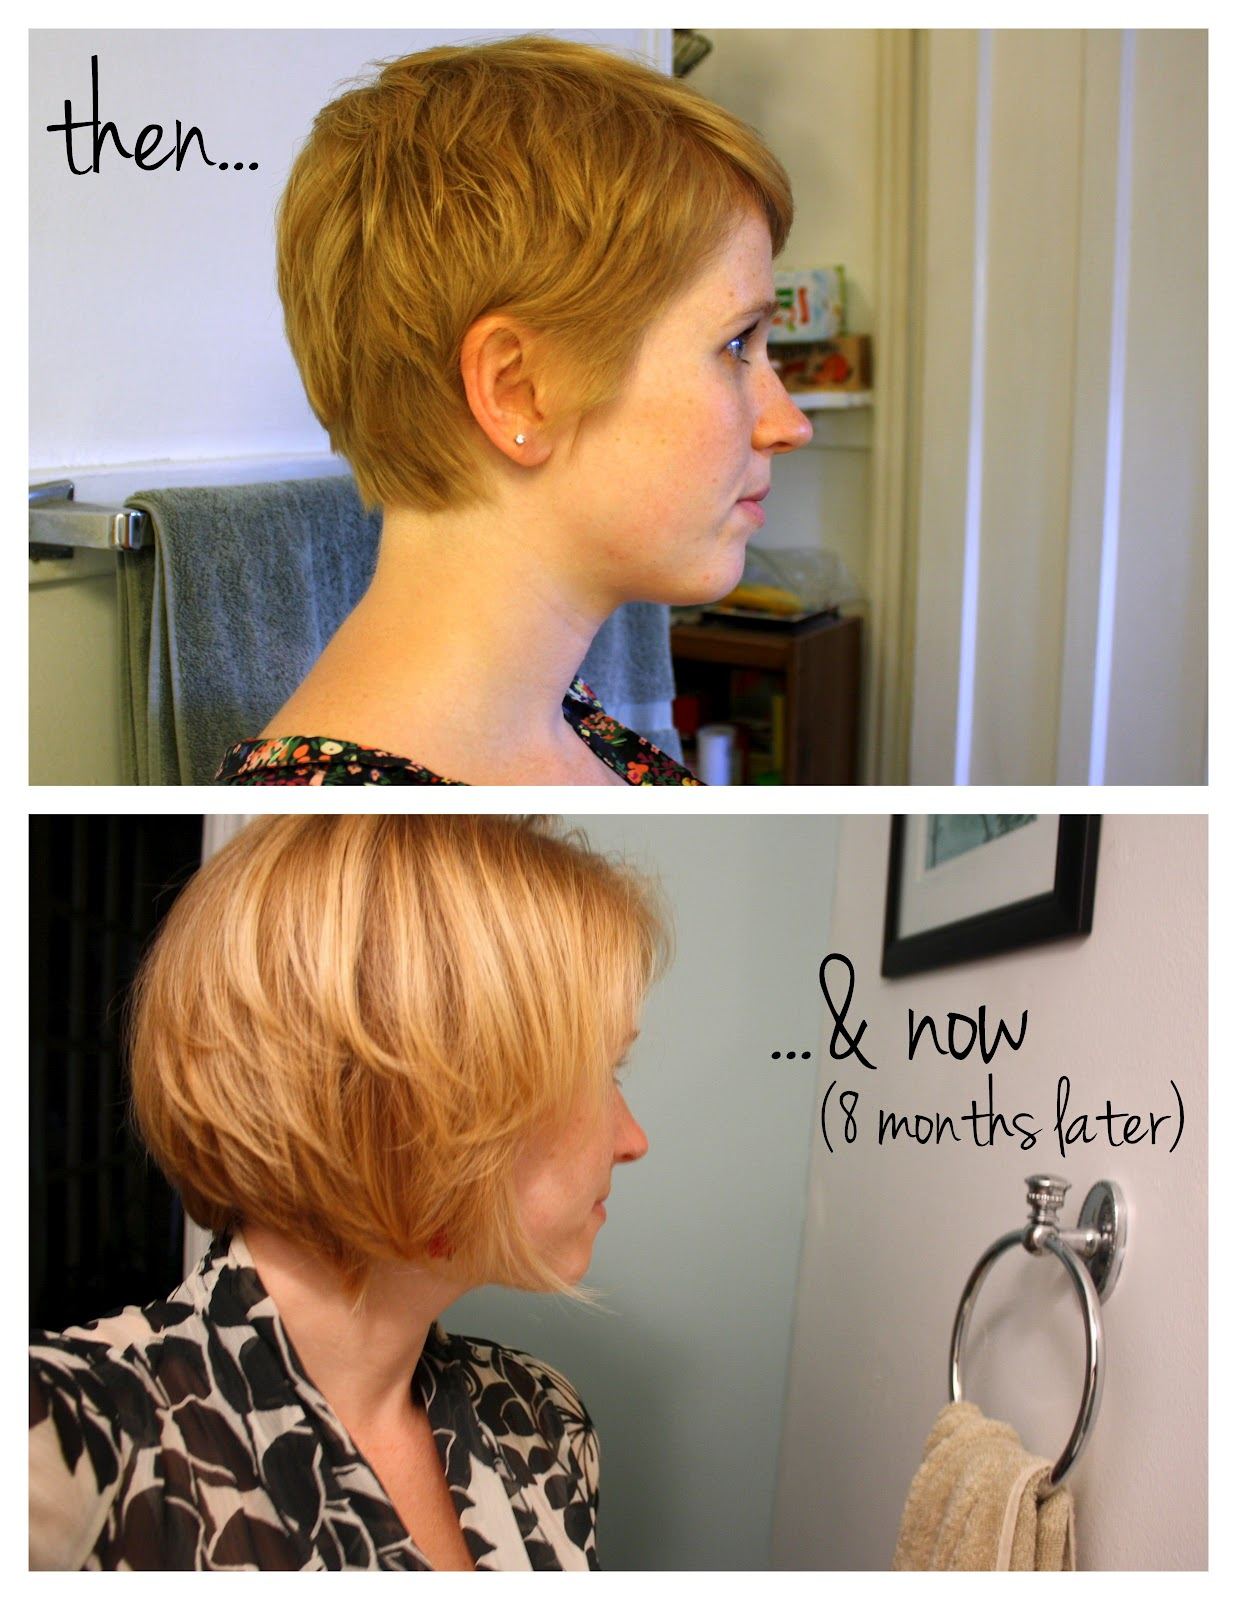 Hairstyles While Growing Out Short Hair Short Hairstyles for Women